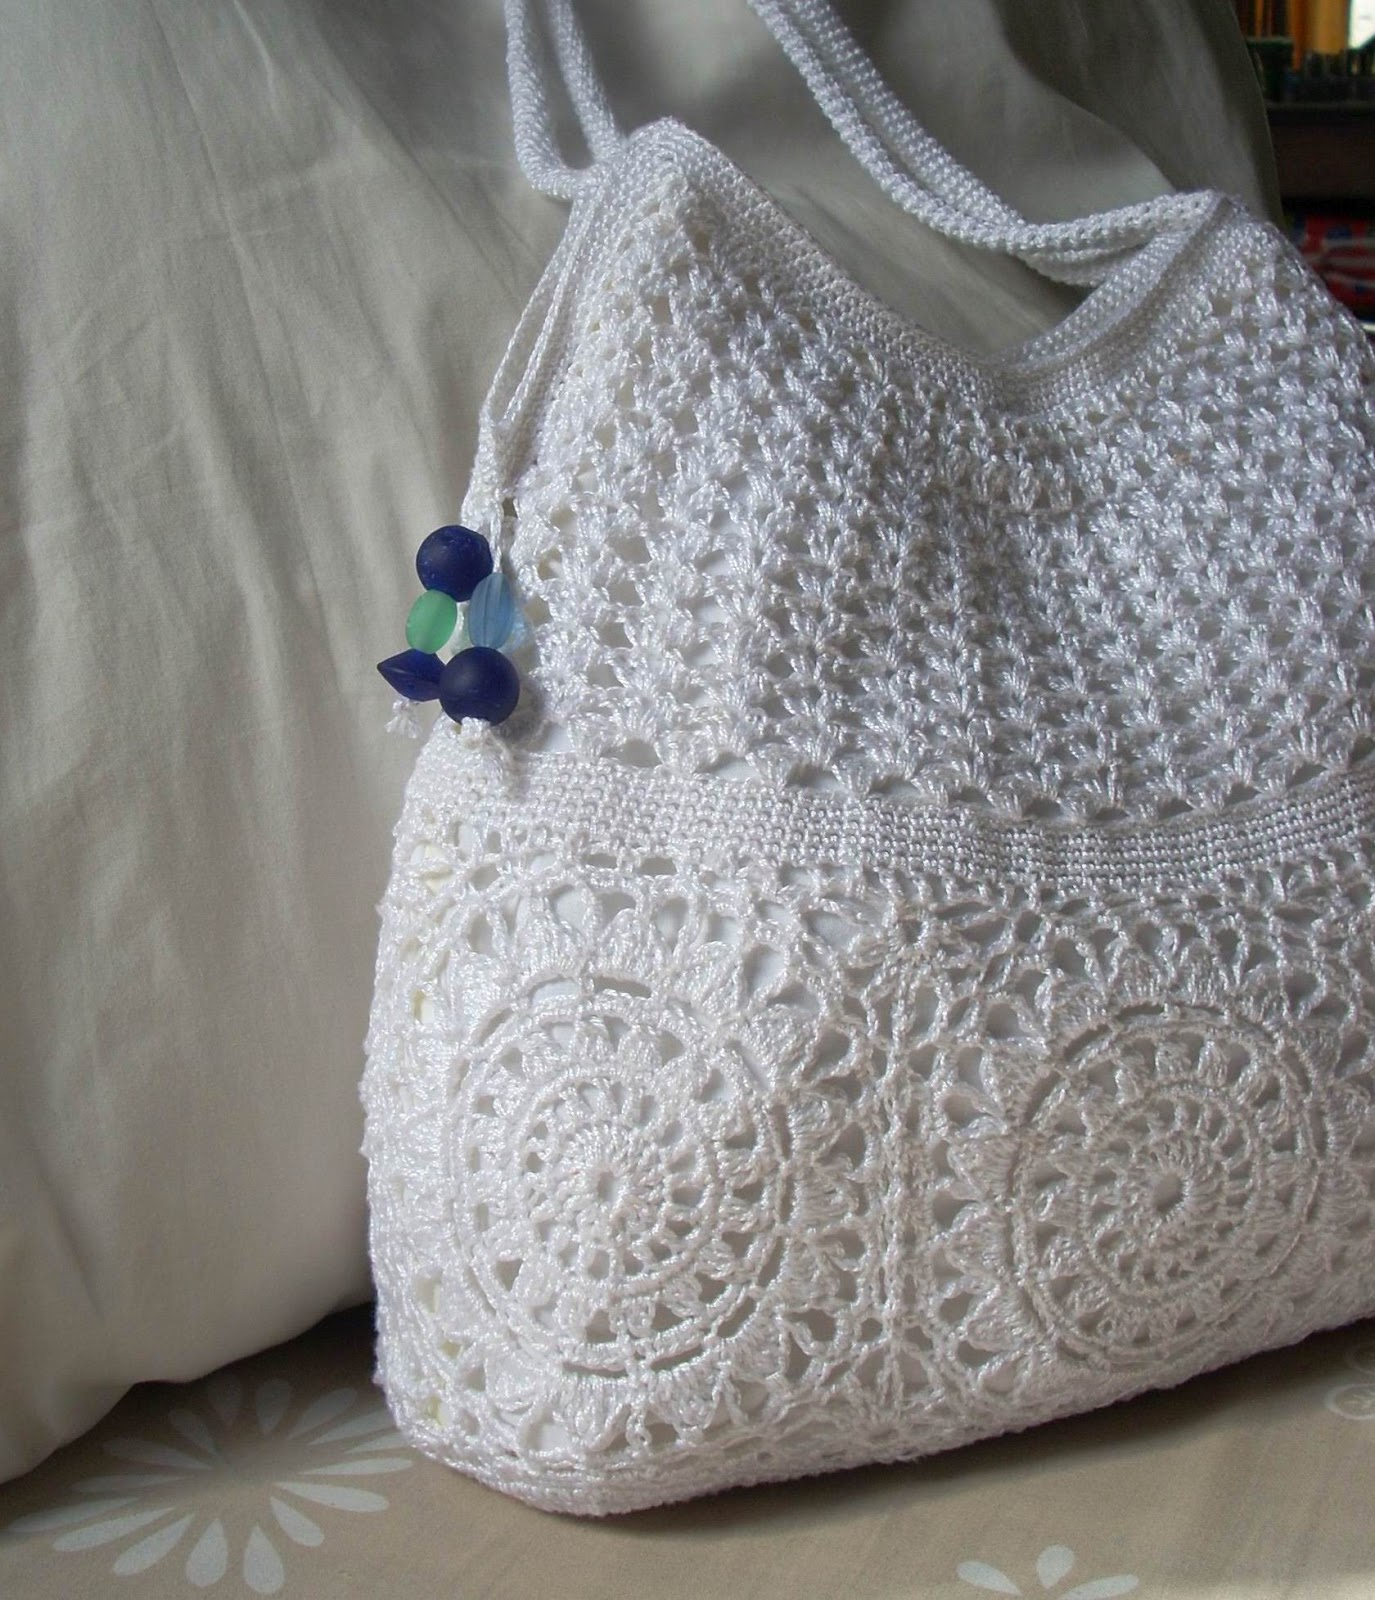 Free Crochet Patterns For Purses : Crochet Bag Patterns On Pinterest Crochet Pattern Ideas